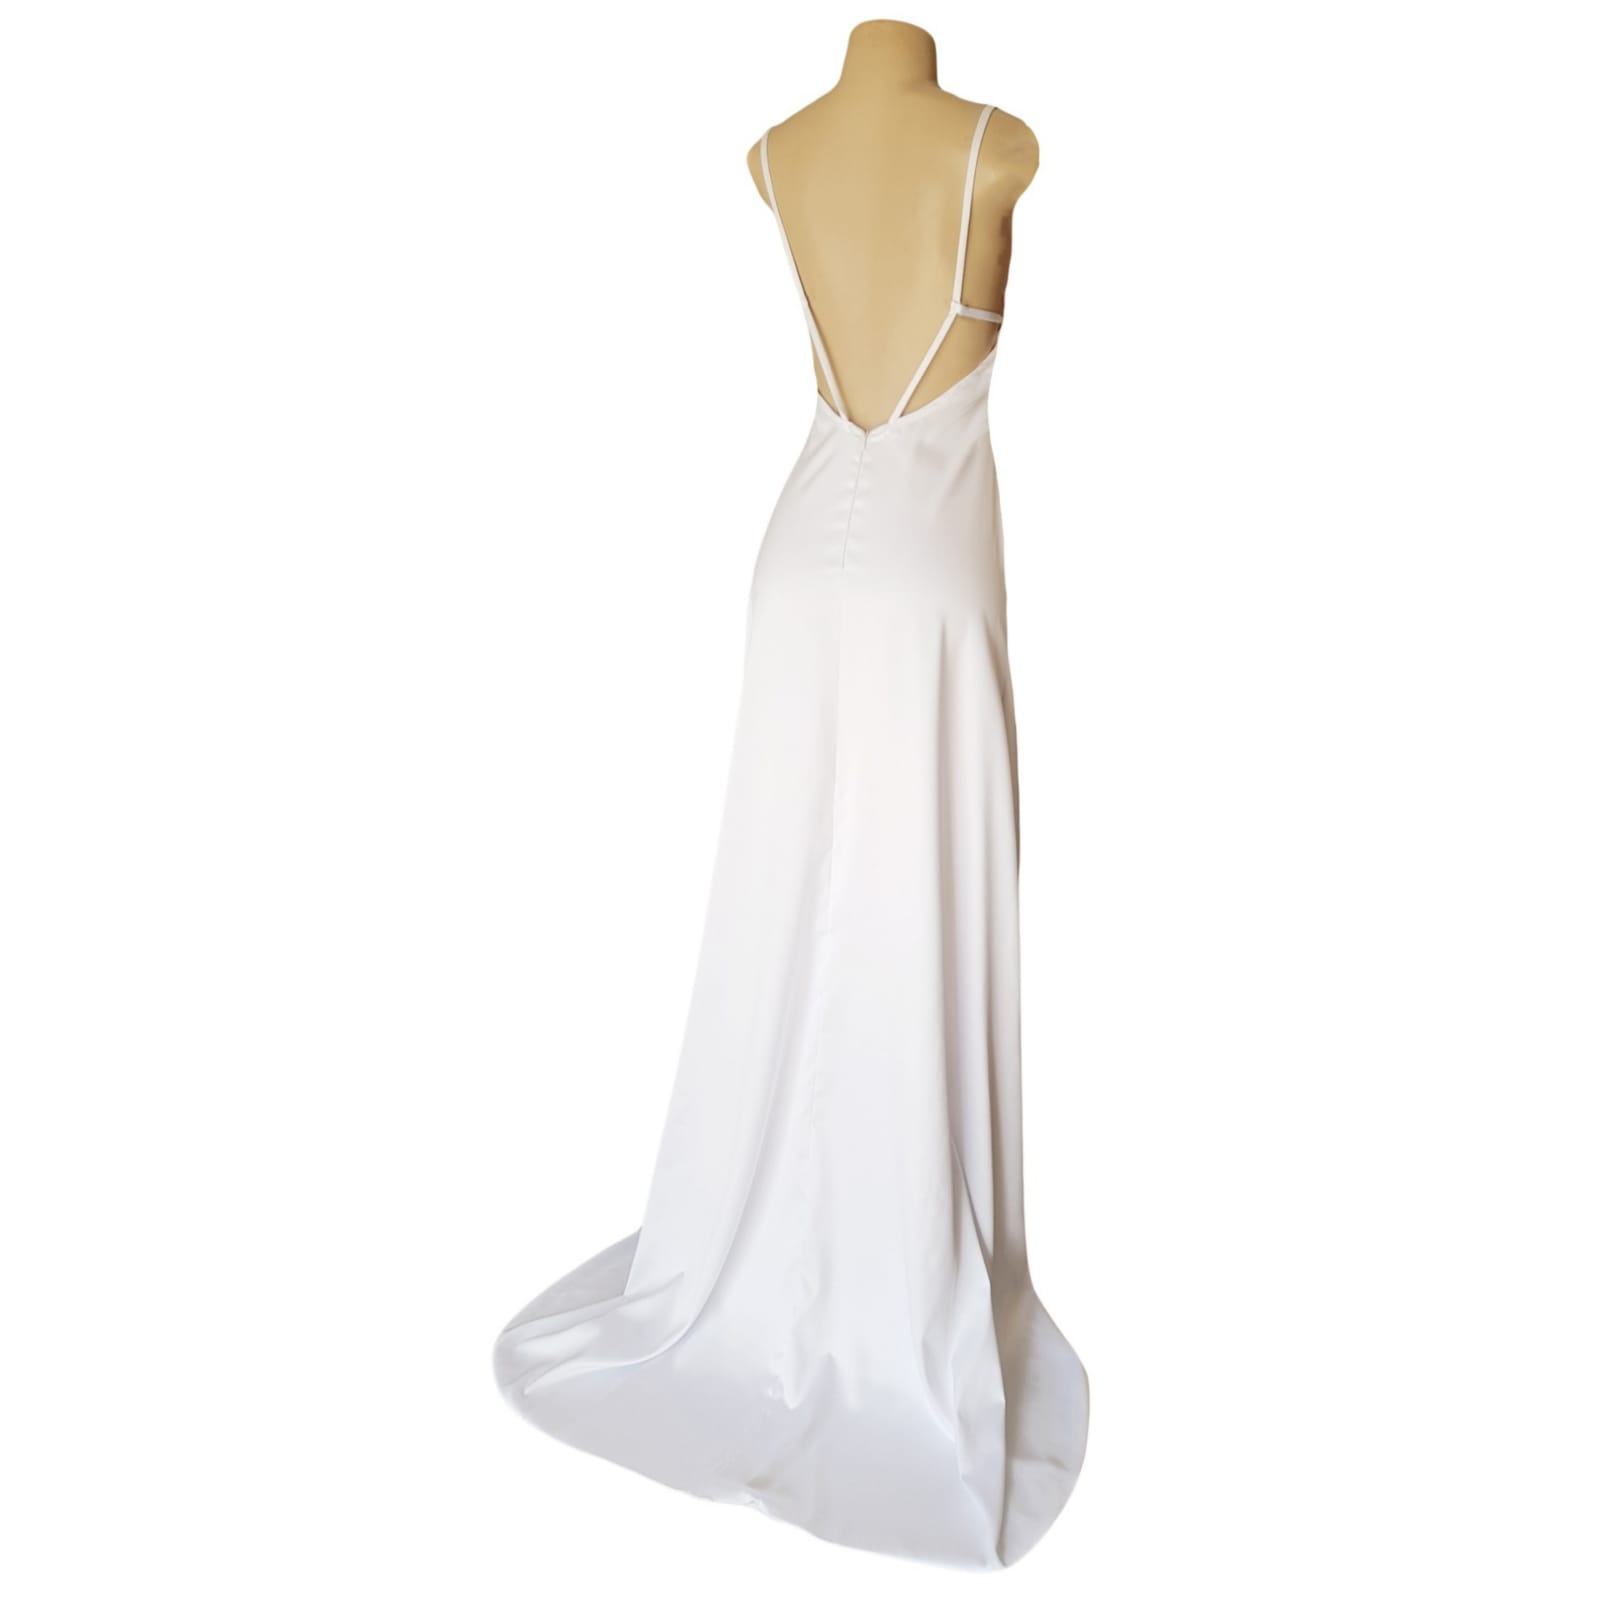 White satin long prom dress with a low open back 6 white satin long prom dress with a low open back, with strap detail. Straight neckline, 2 slits and a train.